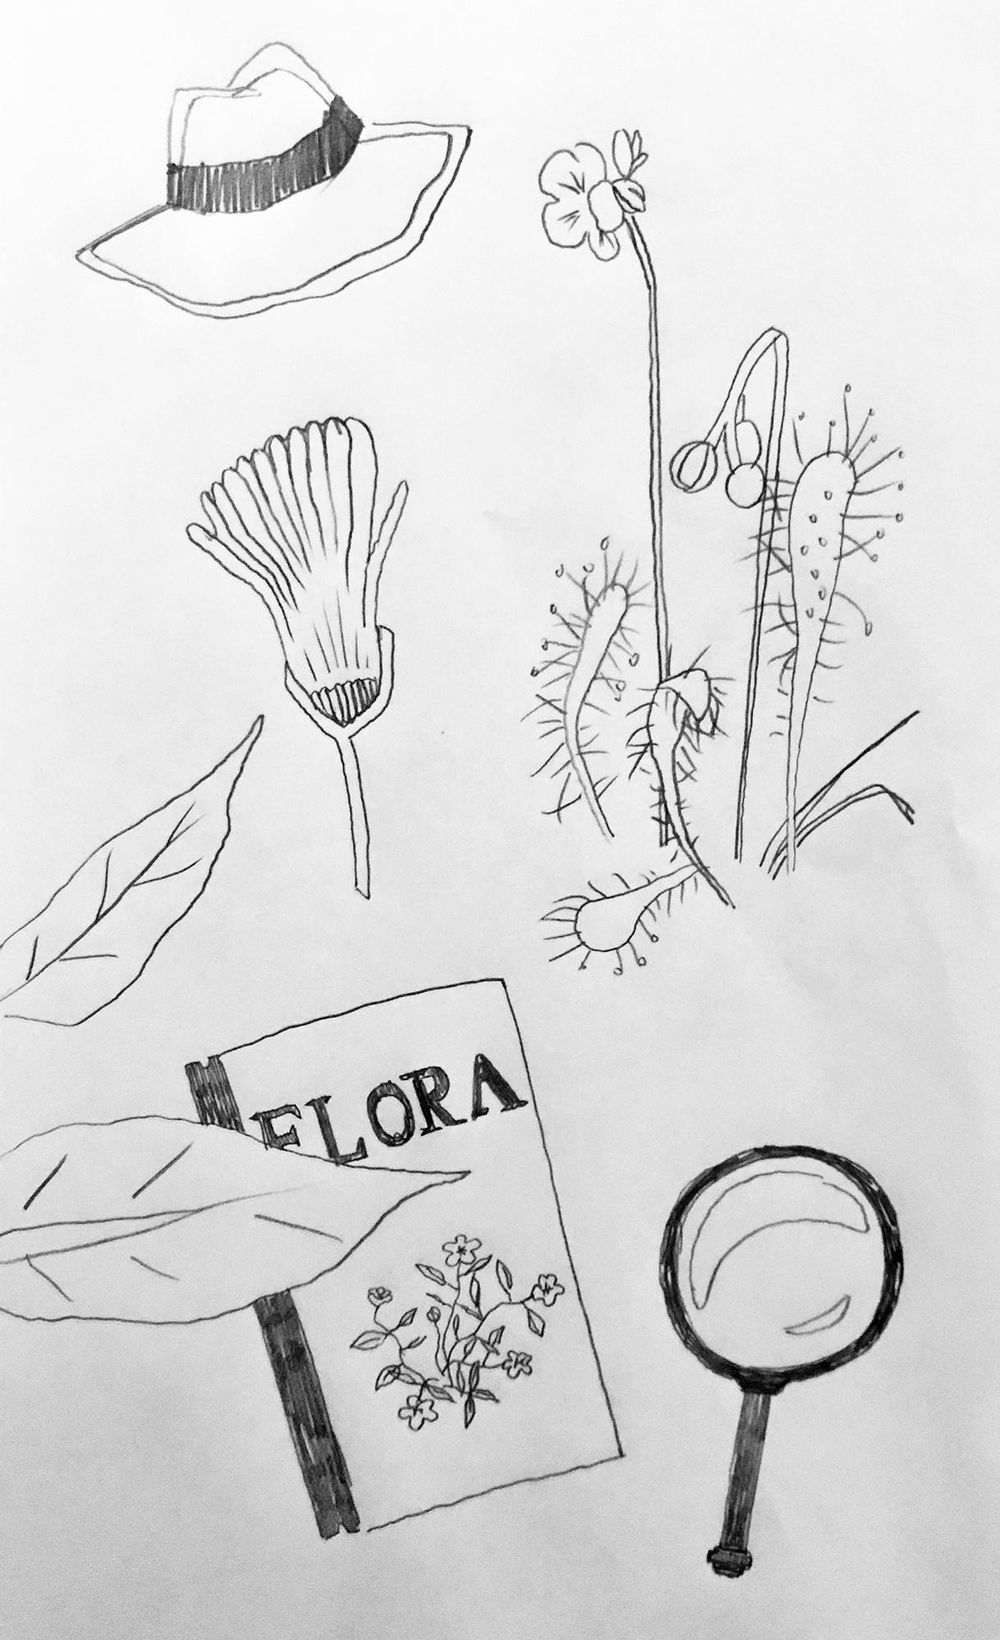 Tools of a botanist - image 2 - student project